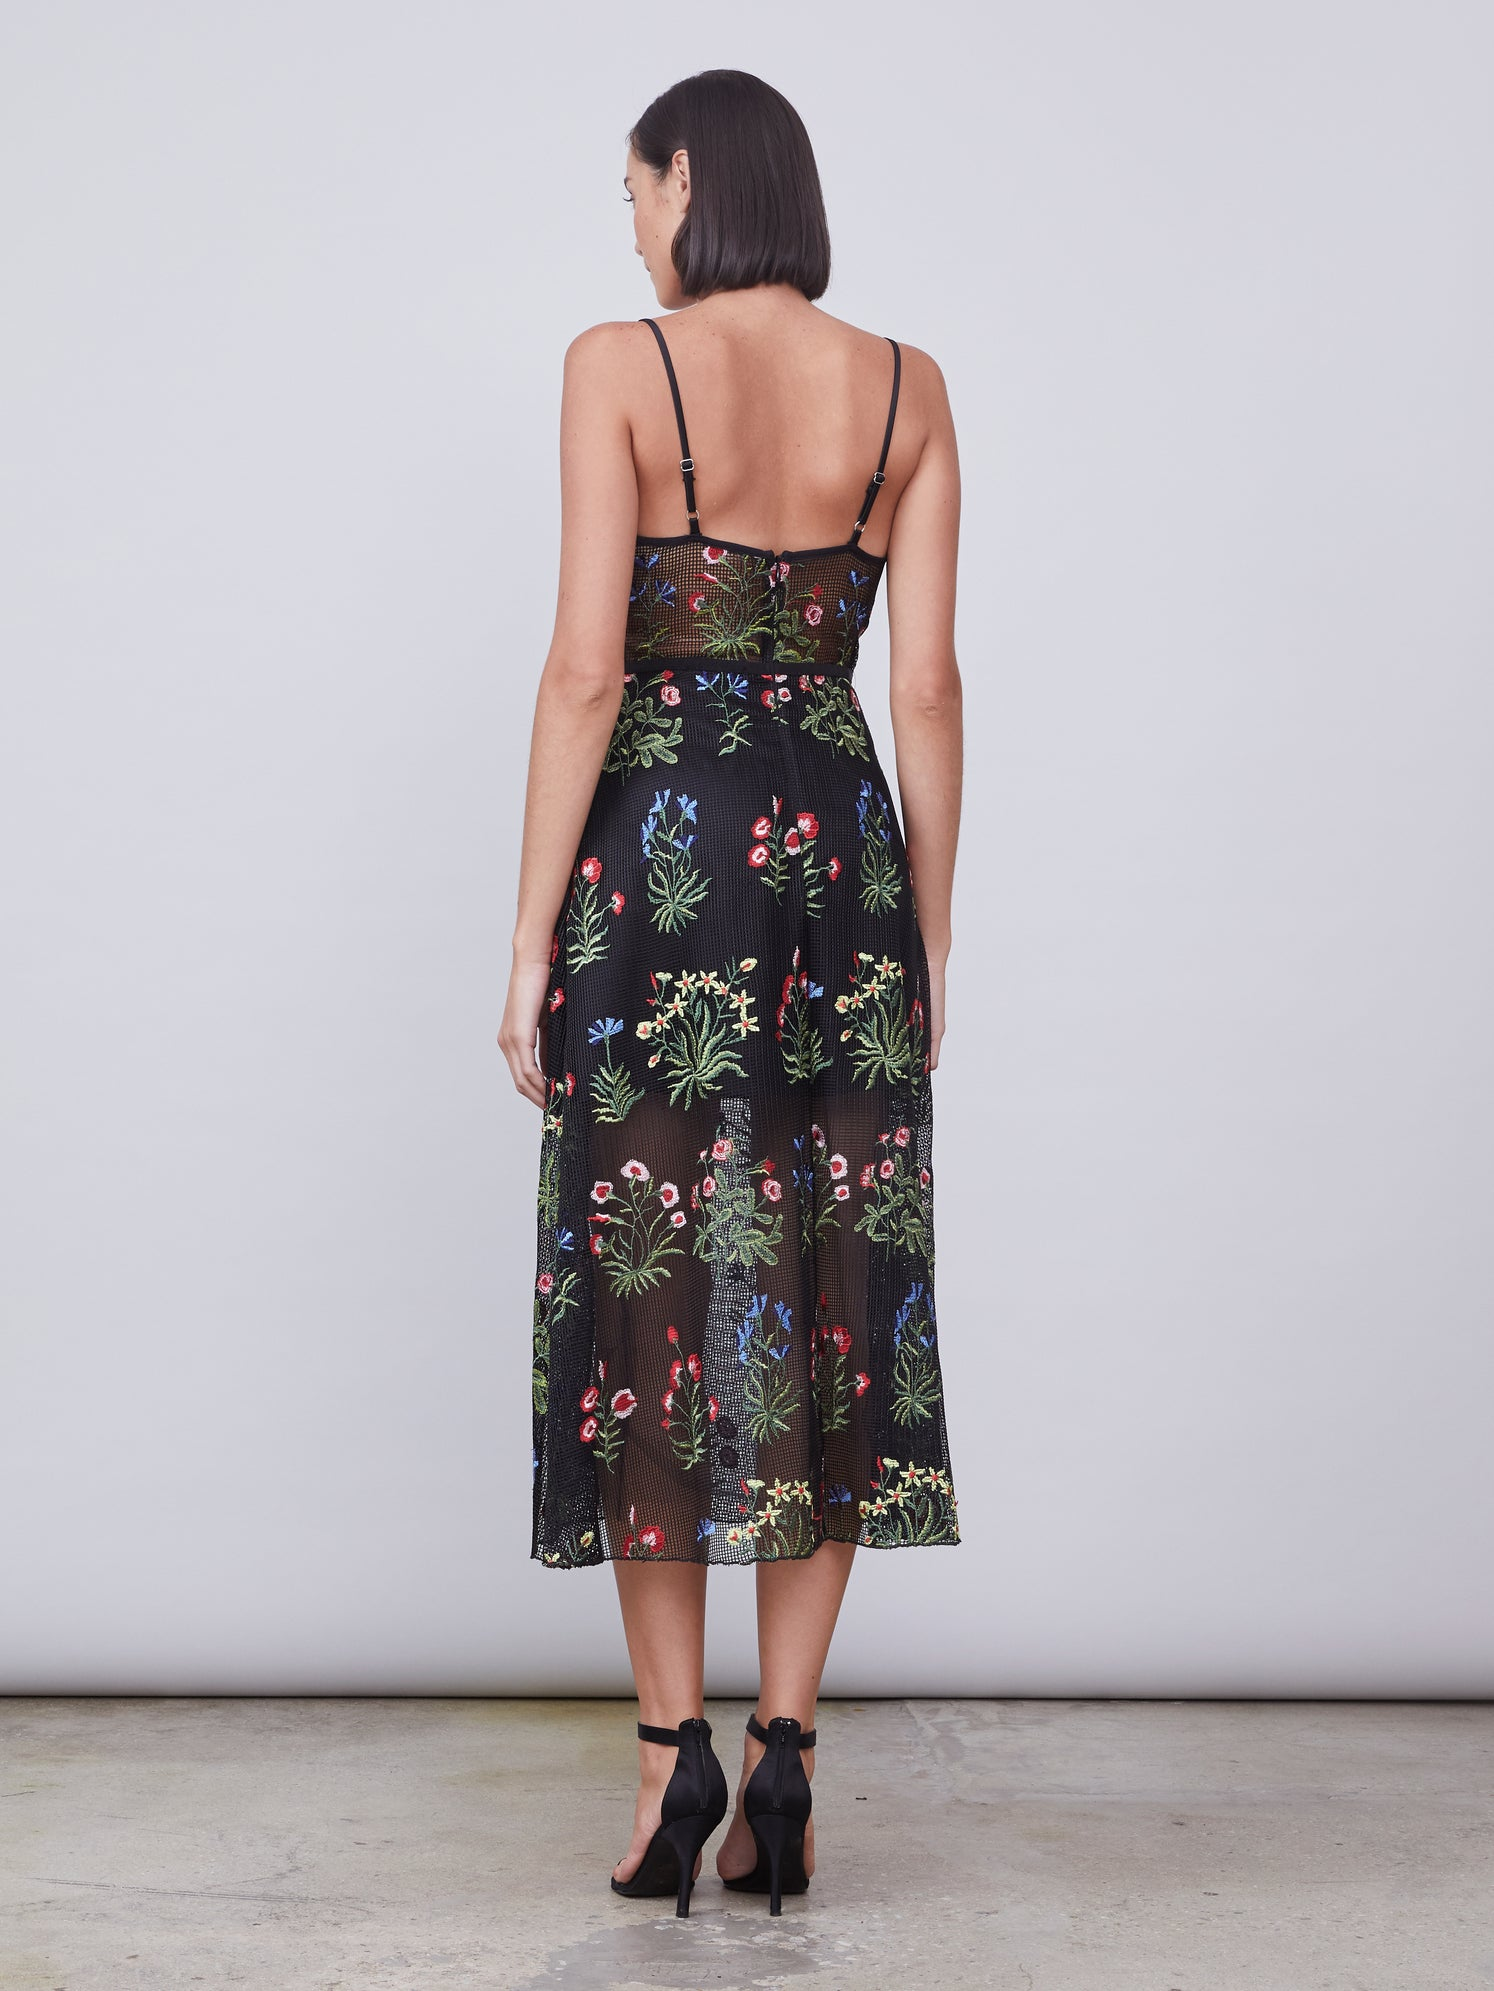 Embroidered floral mesh bustier dress with side pockets Alternate